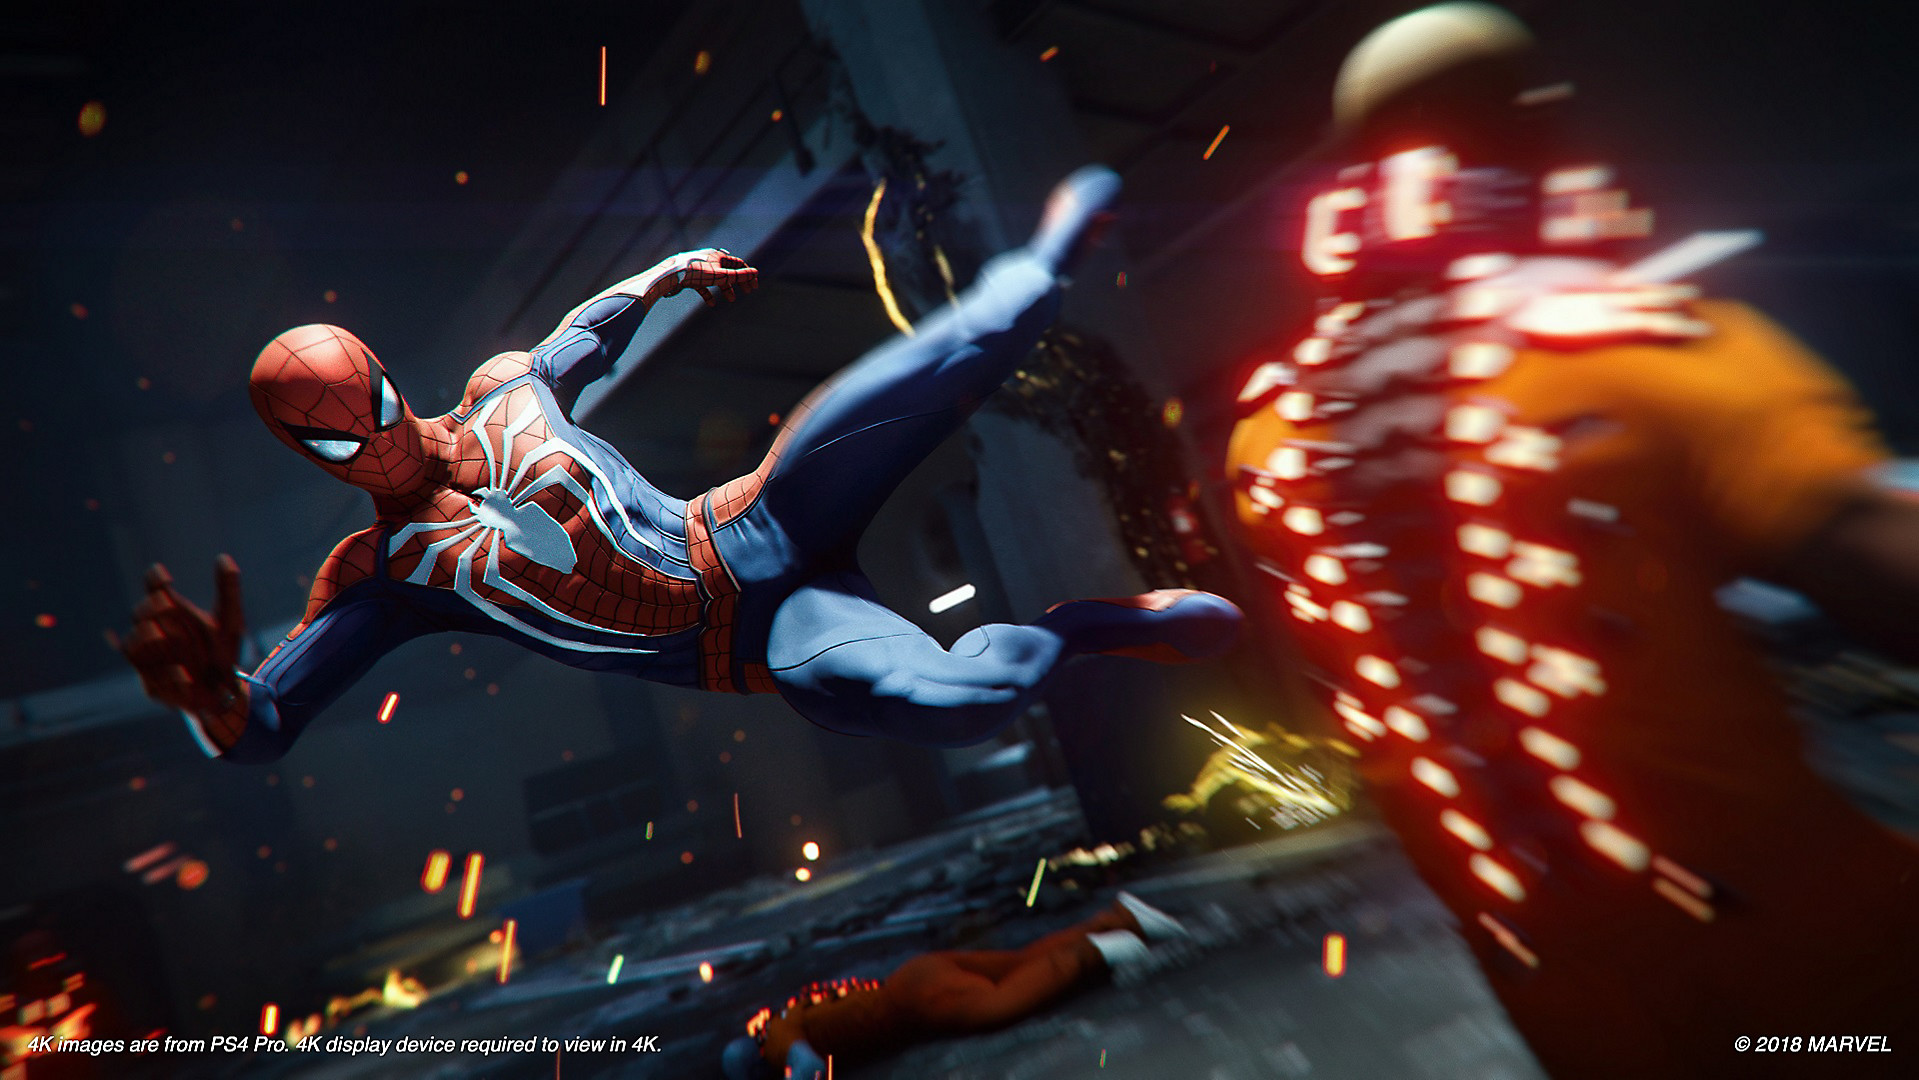 Spider-Man PS4 at E3 image 4